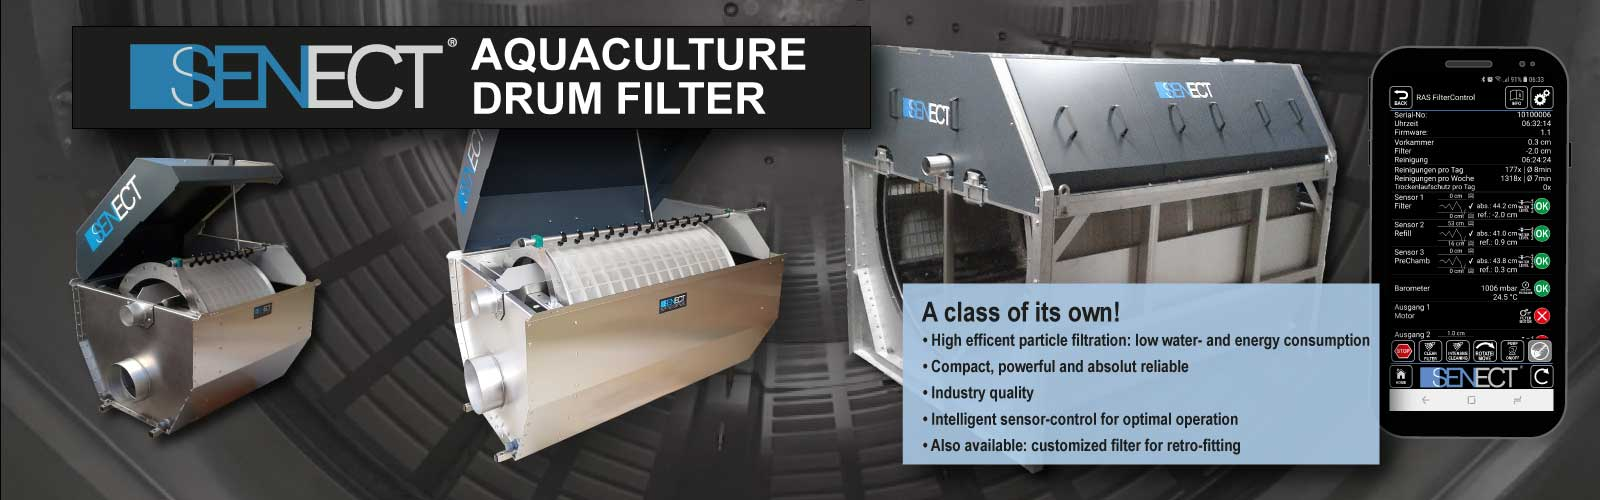 Aquaculture Drum Filters